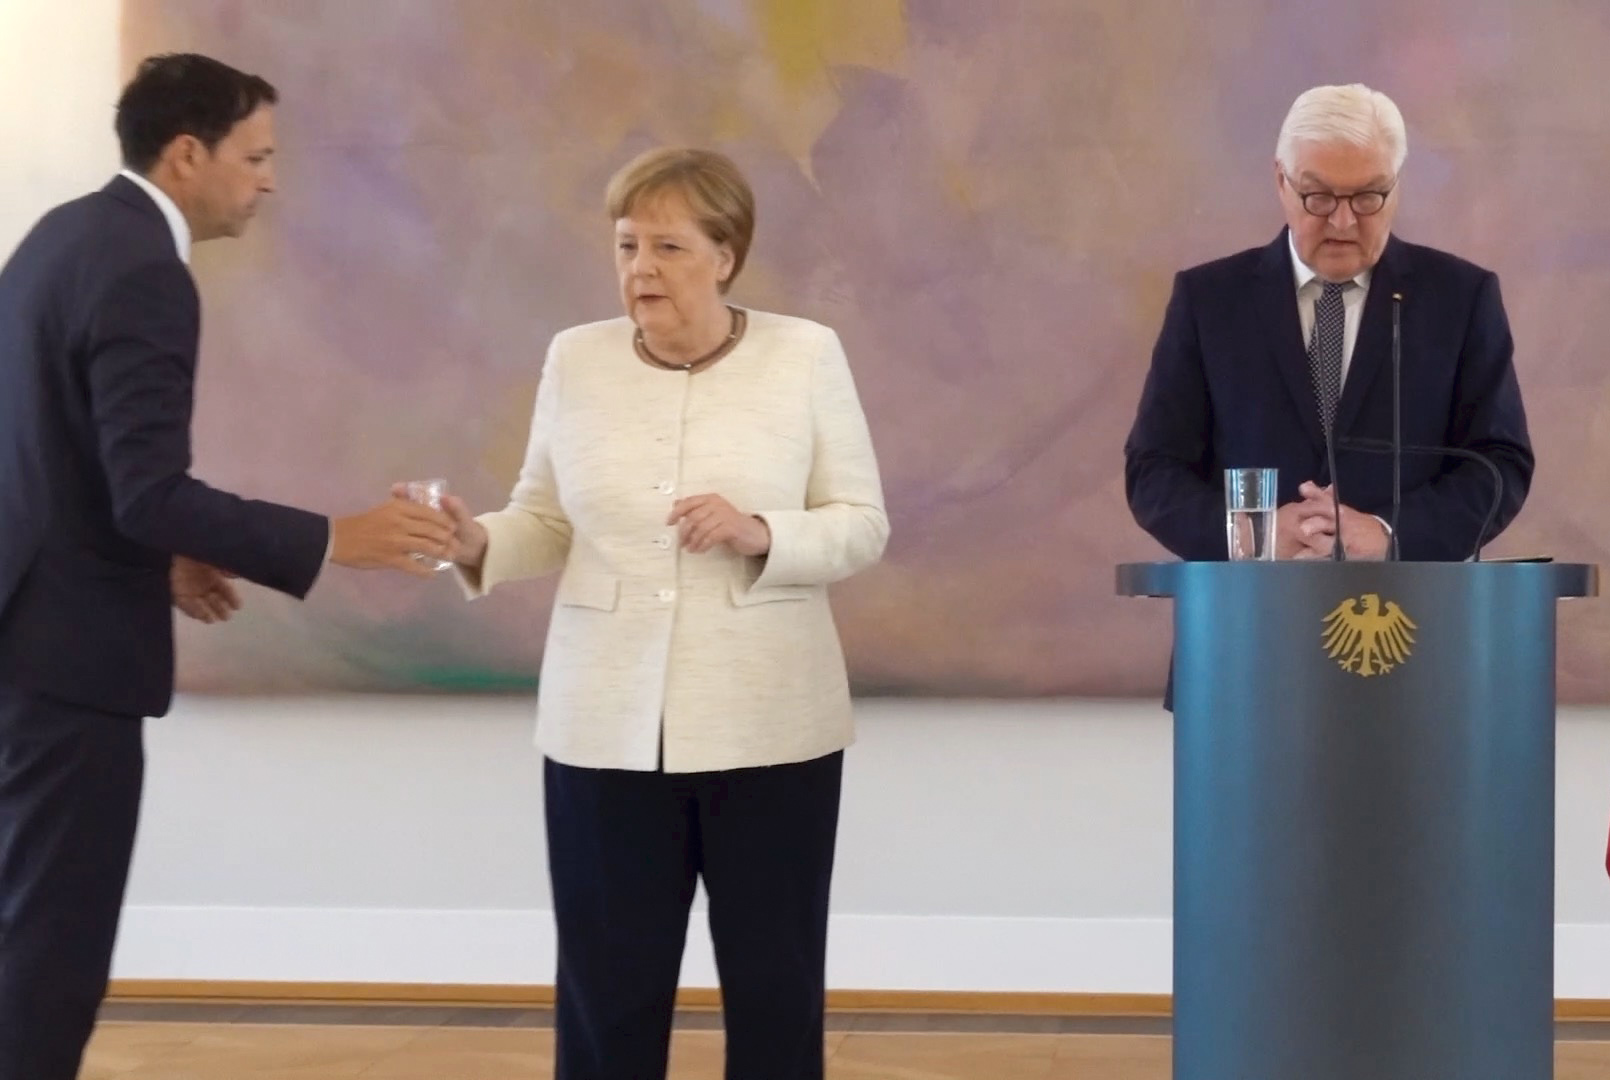 German Chancellor Angela Merkel refuses a glass of water offered to her as she attends a ceremony where the country's new Justice Minister was given her certificate of appointment by German President Frank-Walter Steinmeier (R) at the presidential Bellevue Palace in Berlin on June 27, 2019. (KAY NIETFELD/AFP/Getty Images)